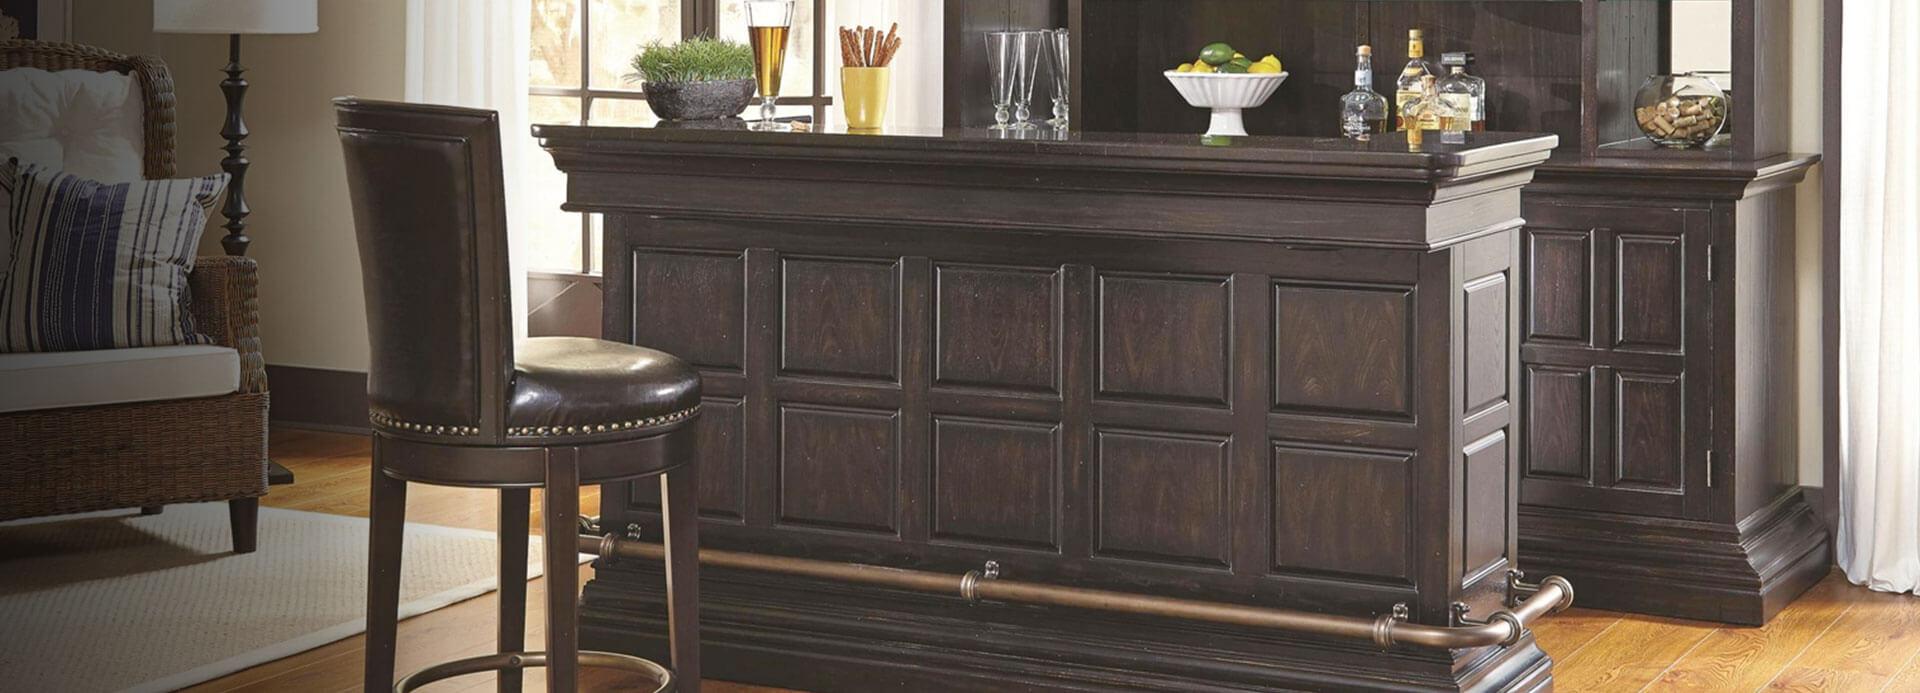 Home Bar Furniture Amazoncom : 24795Vertical CategoryBarPriority1HeroCB312952177 from www.amazon.com size 1920 x 693 jpeg 167kB